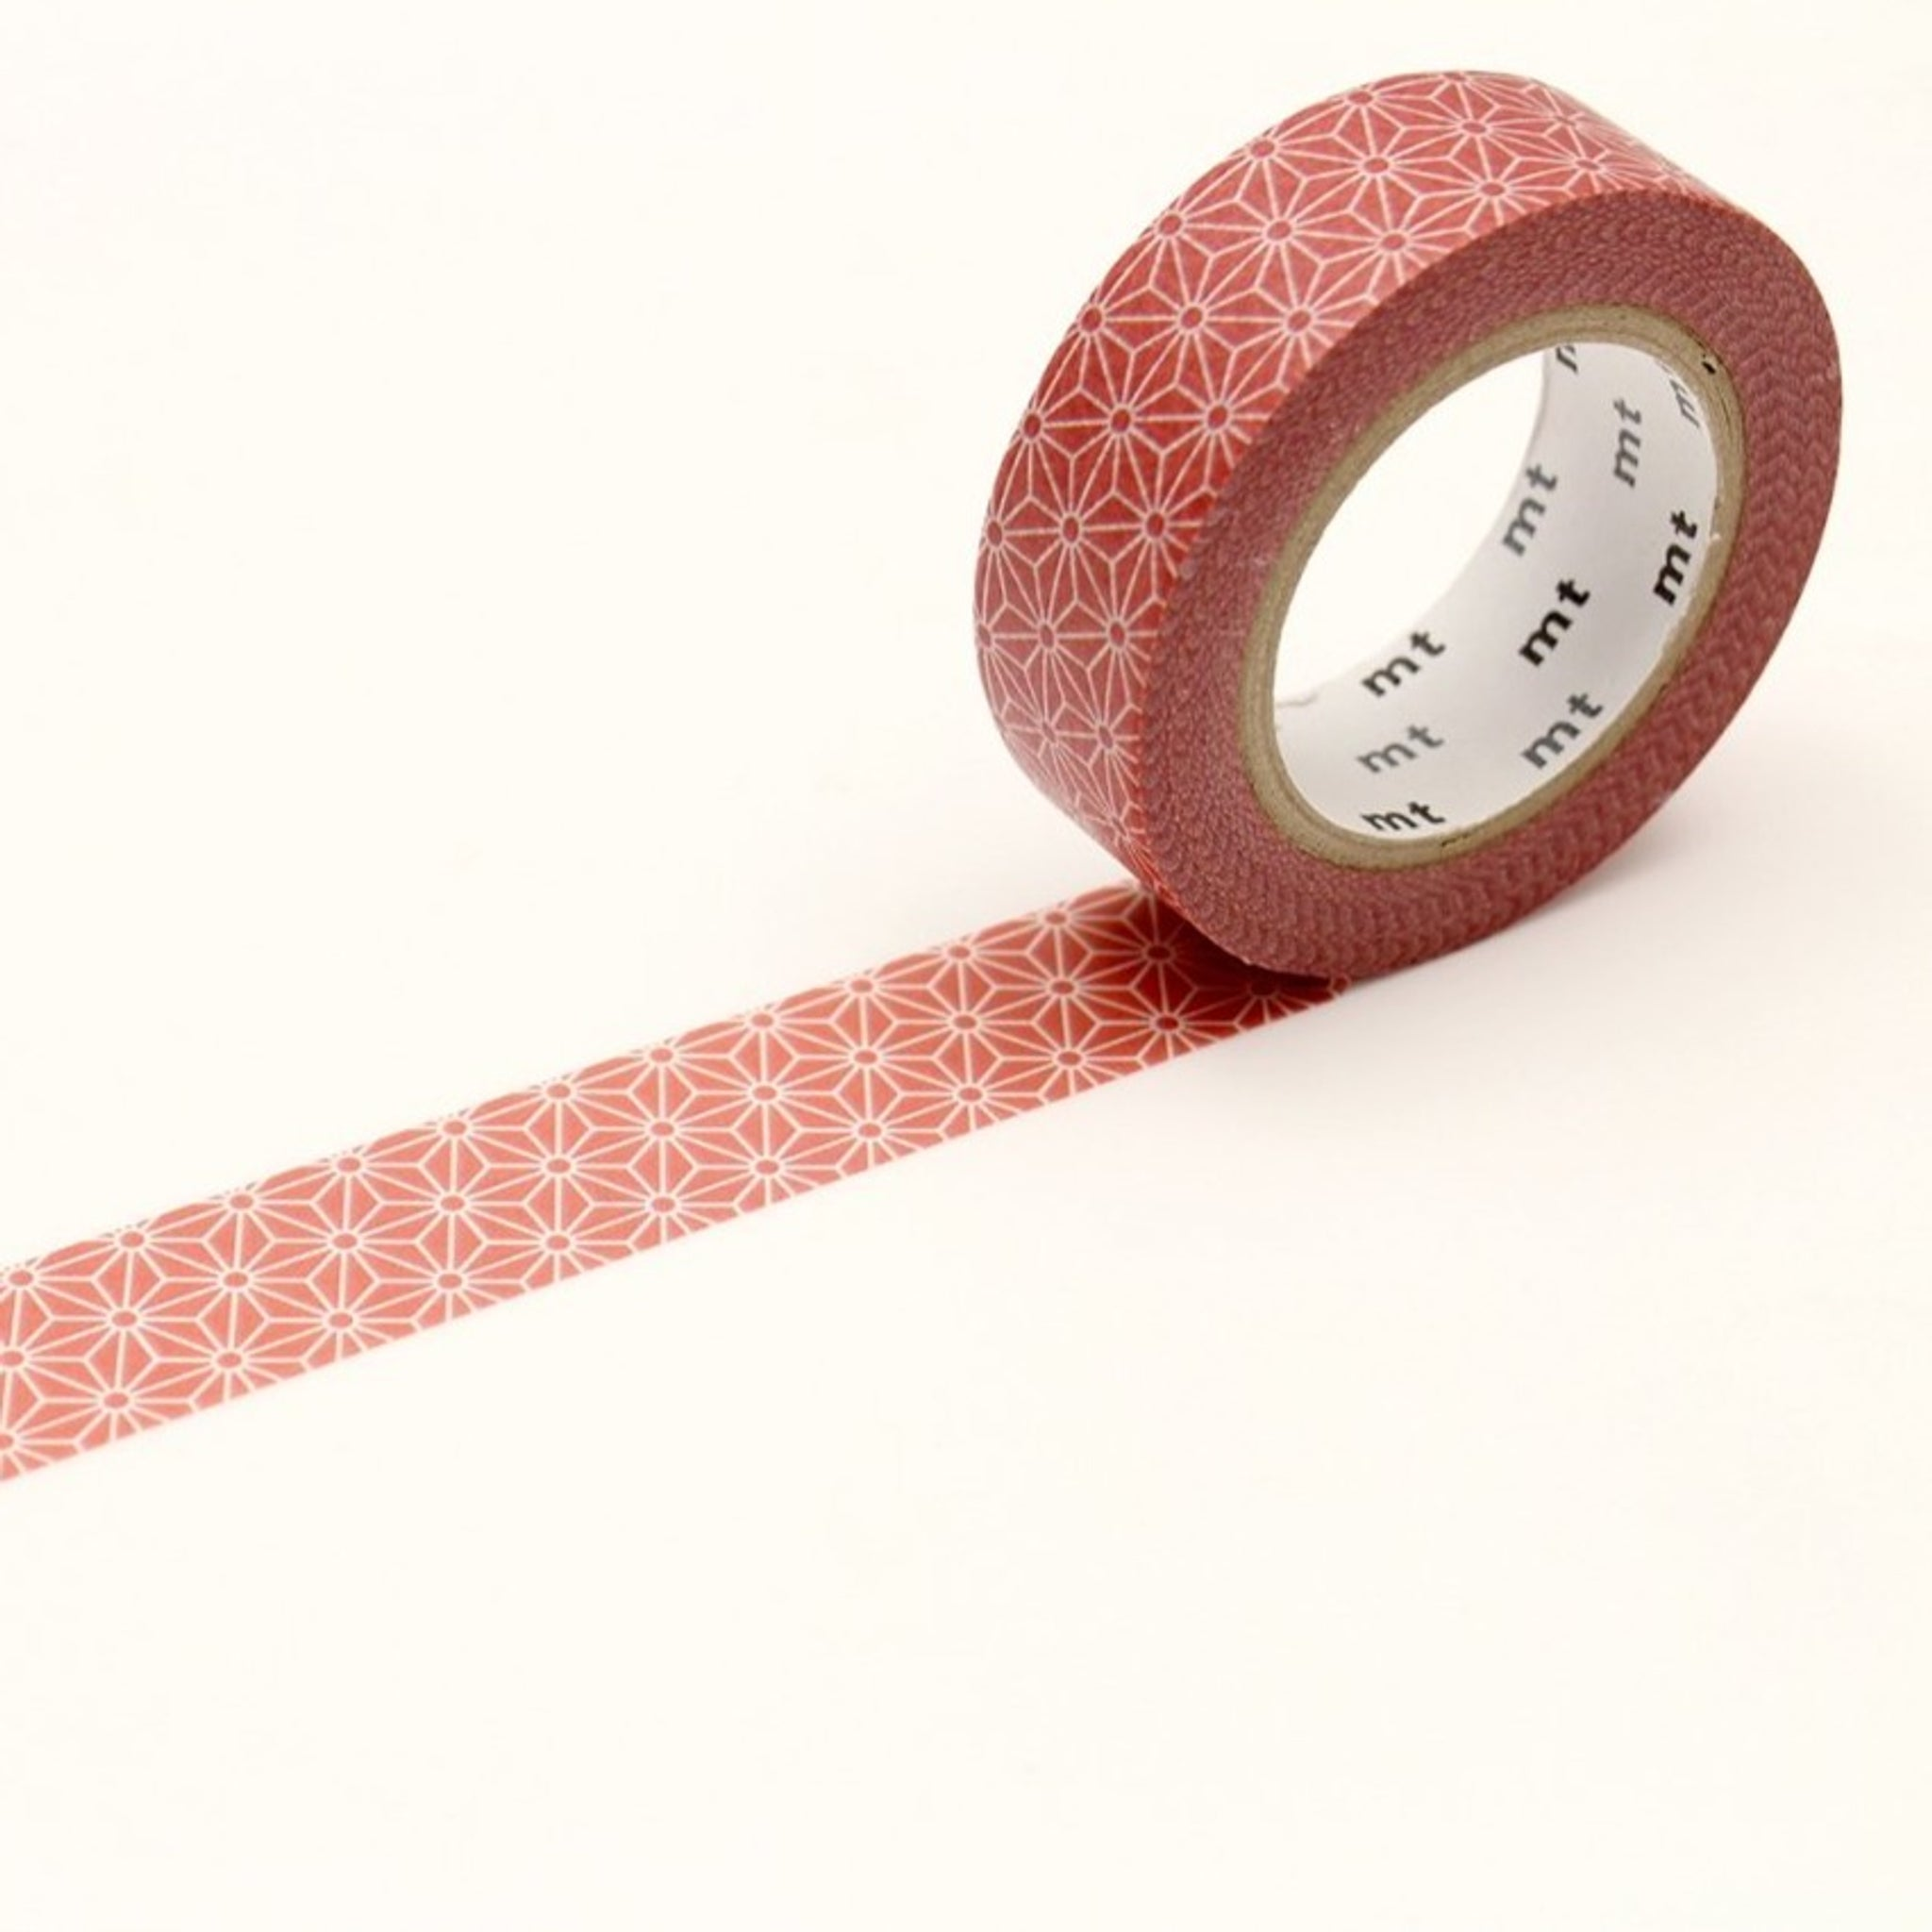 mt Asanoha Araishu washi tape